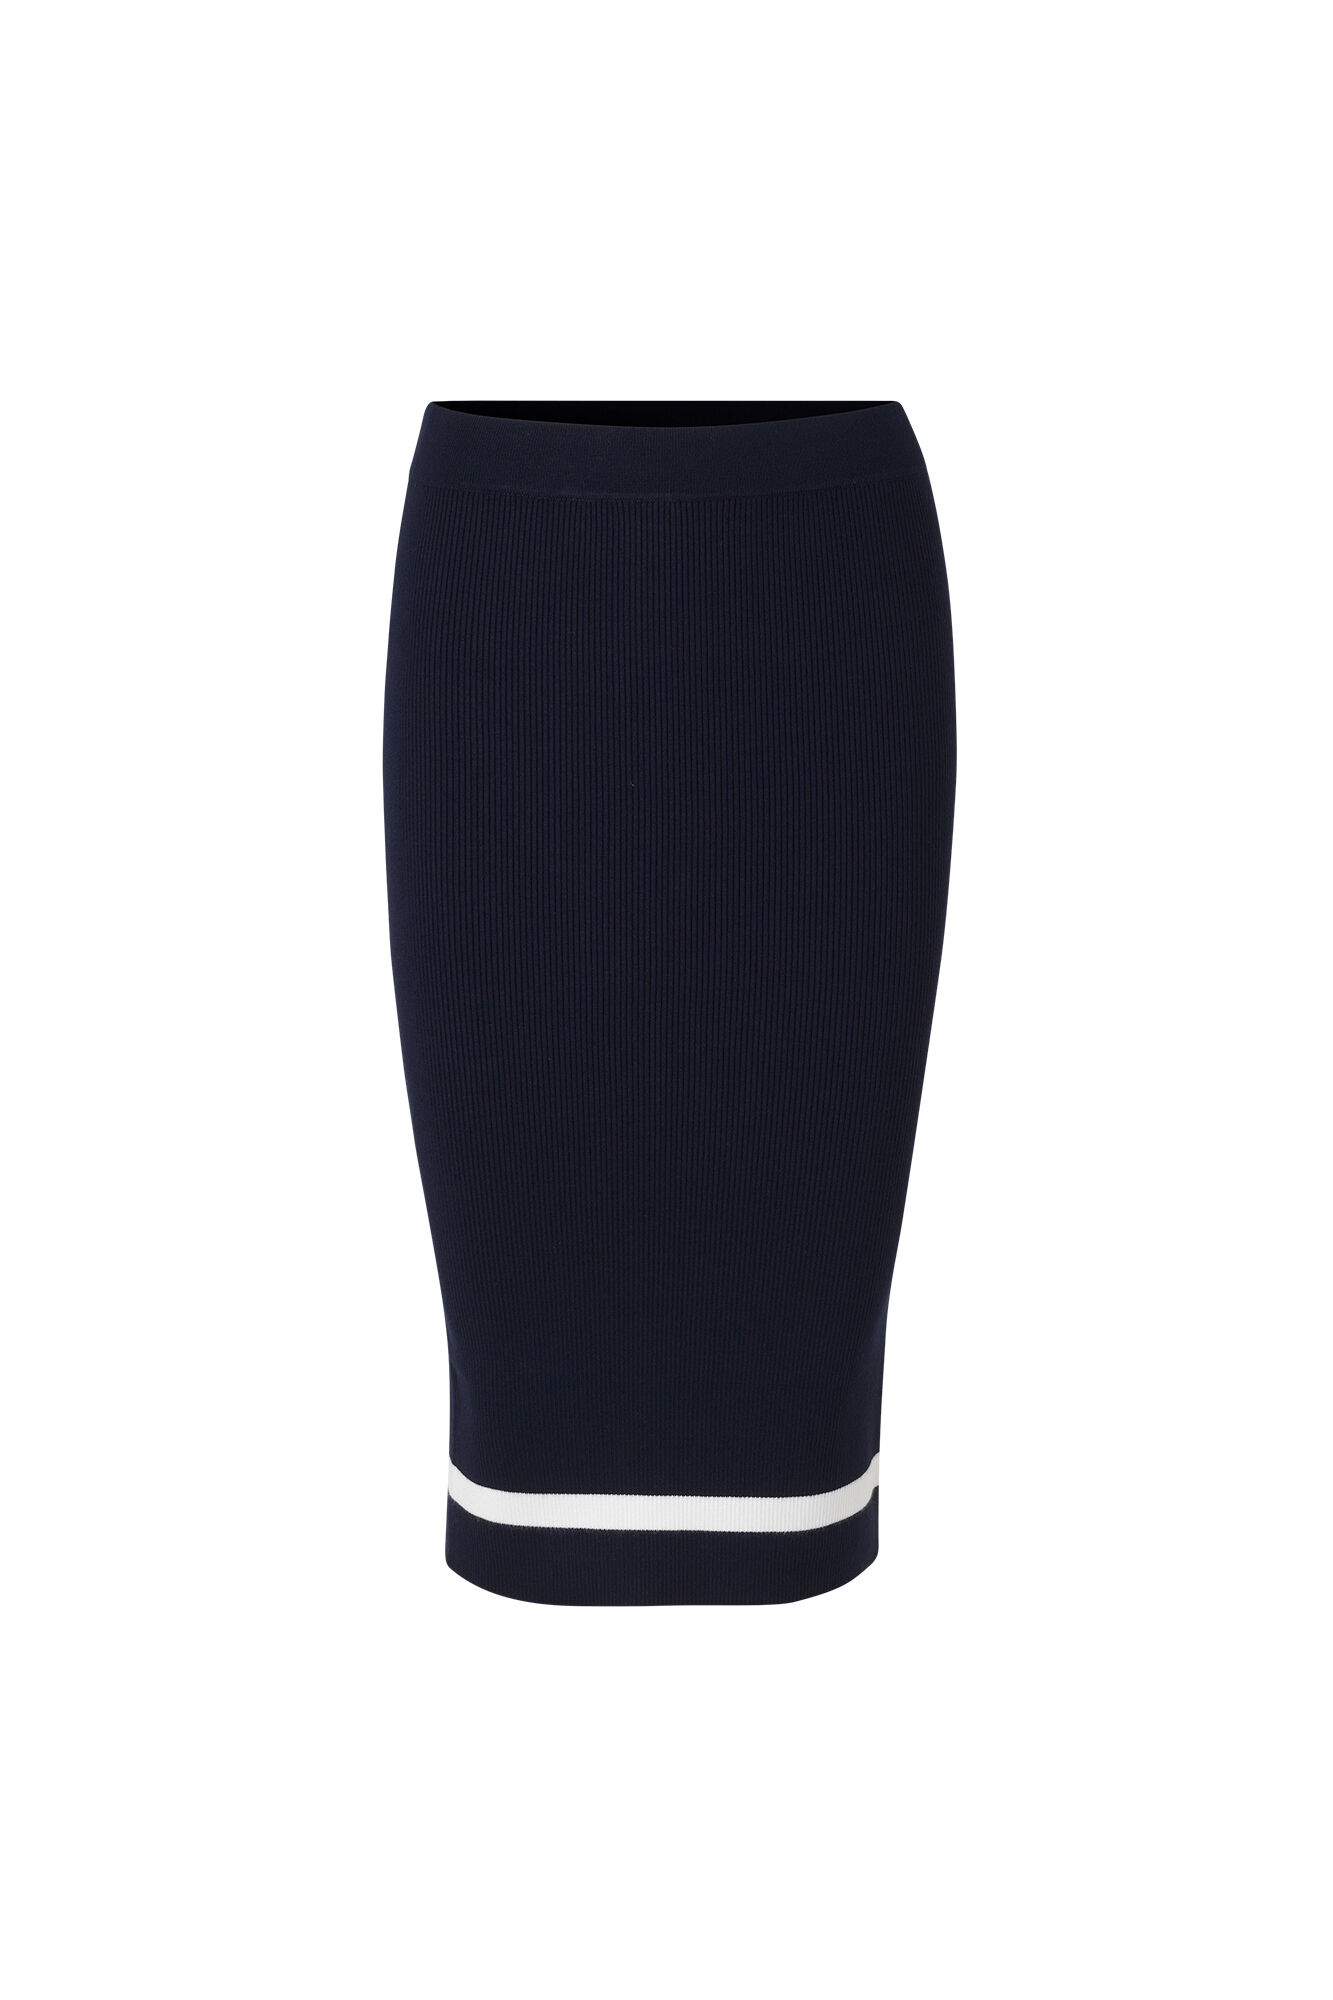 ENSIGMA SKIRT 5121, NEW NAVY